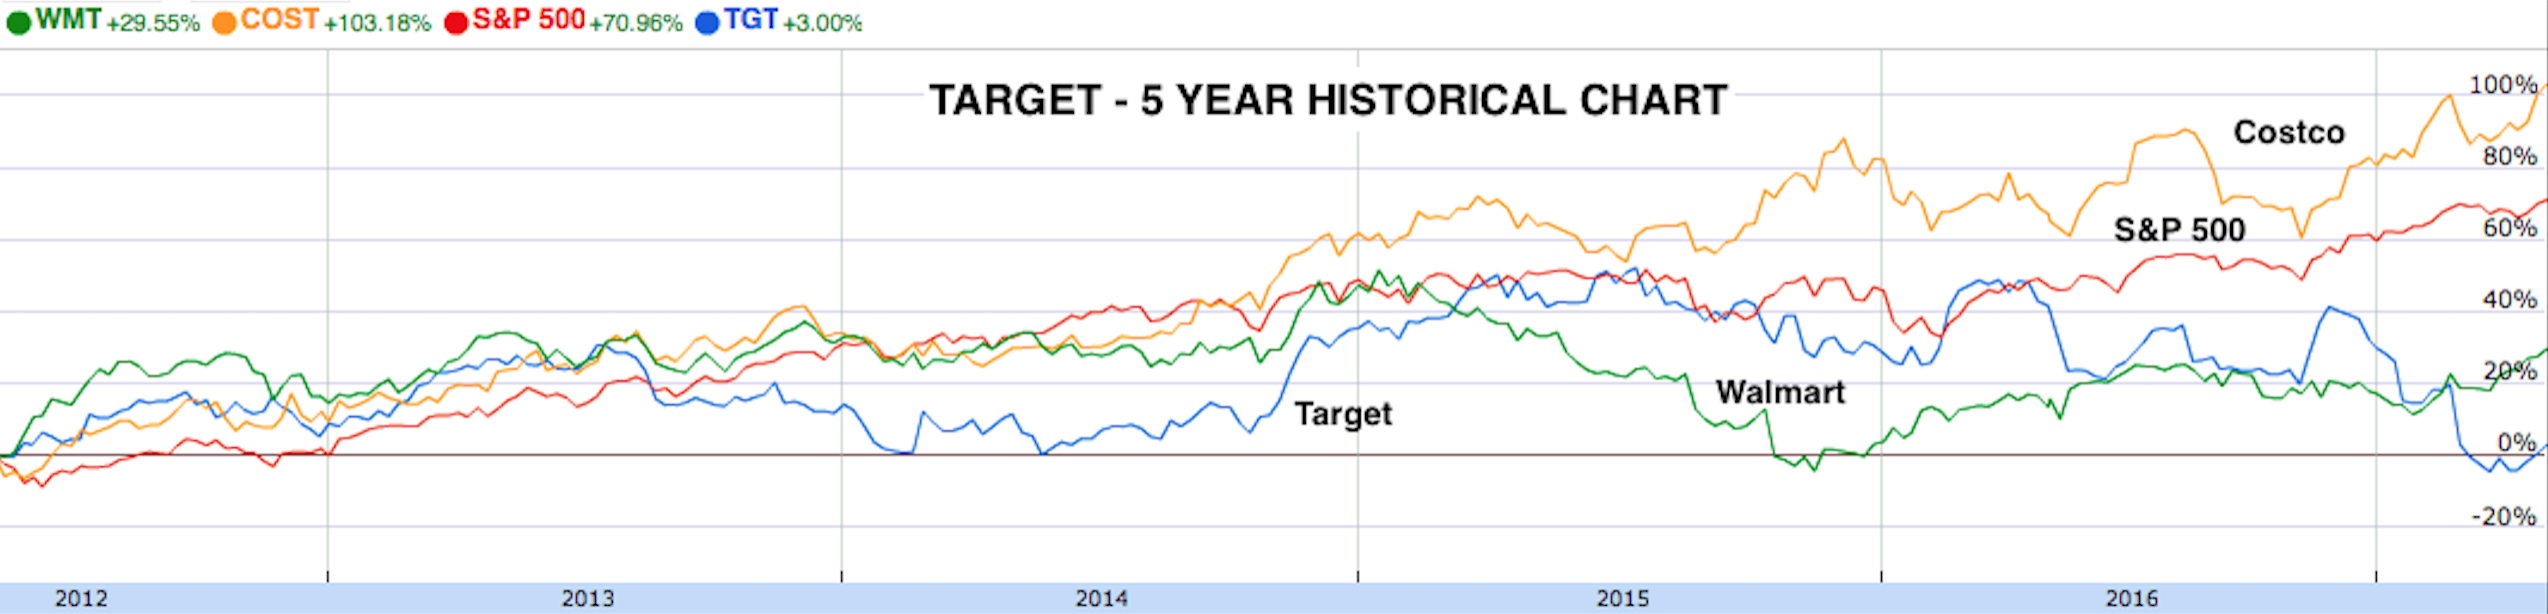 Target 5 Year History